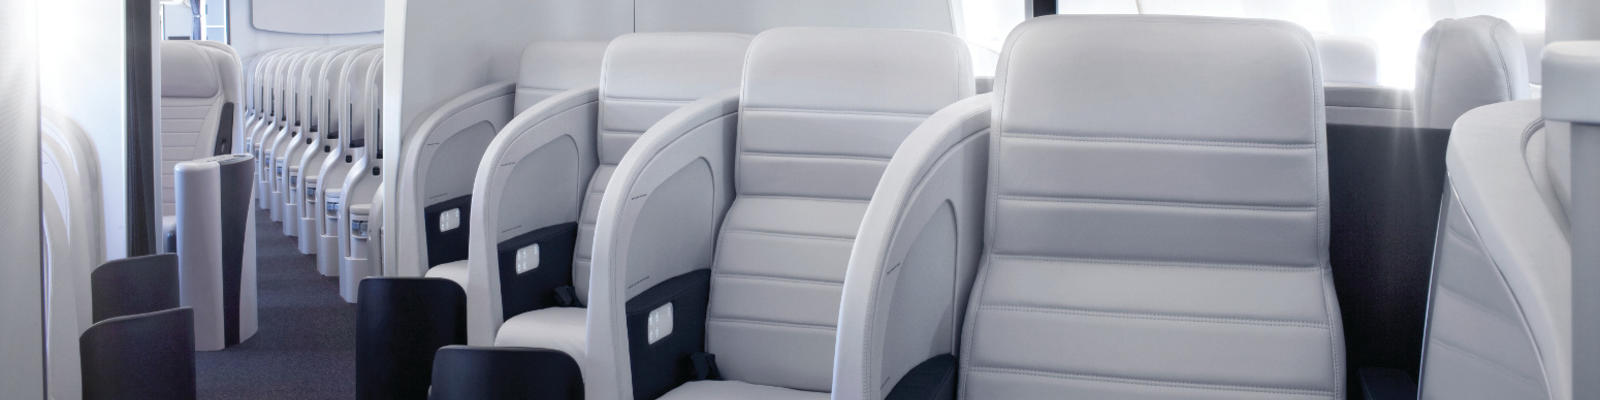 A view up the aisle of the Business Class cabin of an Air New Zealand plane